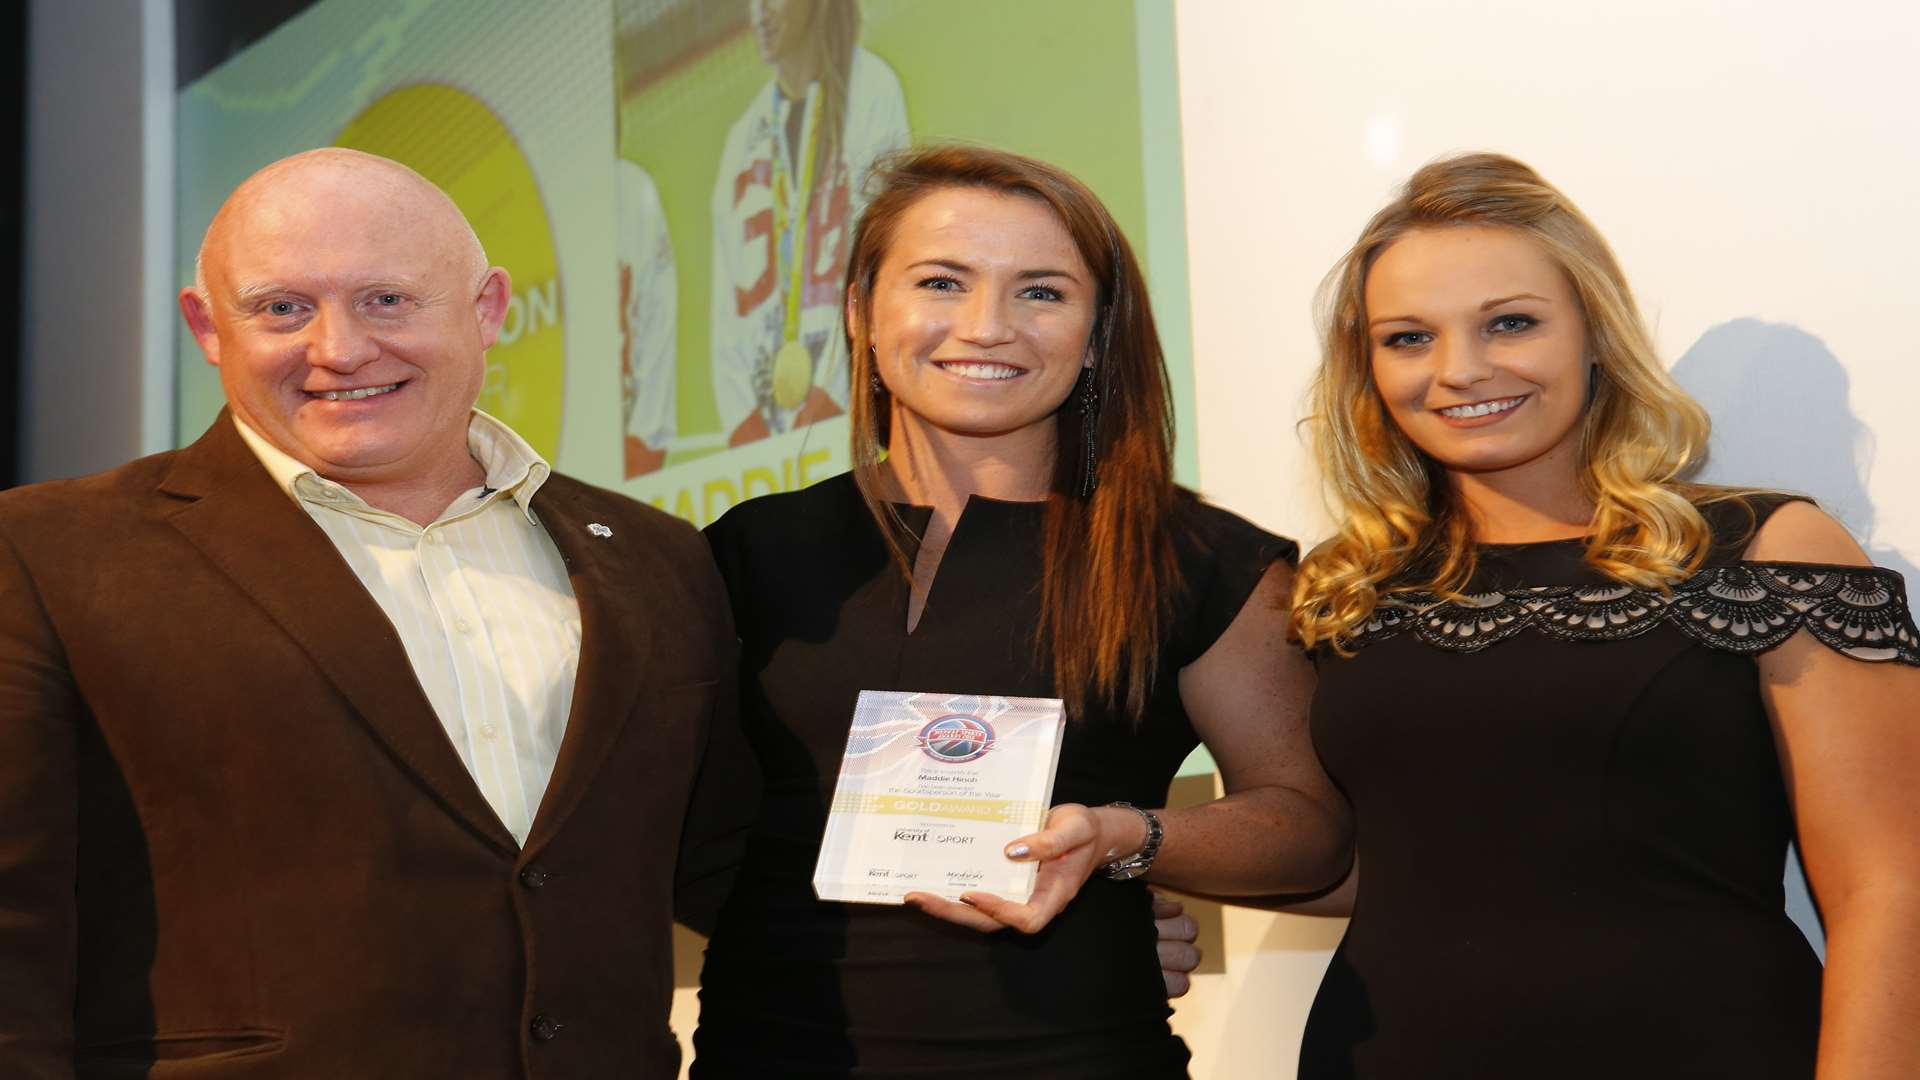 Maddie Hinch, centre, collects her award from University of Kent Sport's Graham Holmes and Charlotte Evans, the 2014 winner. Picture: Andy Jones